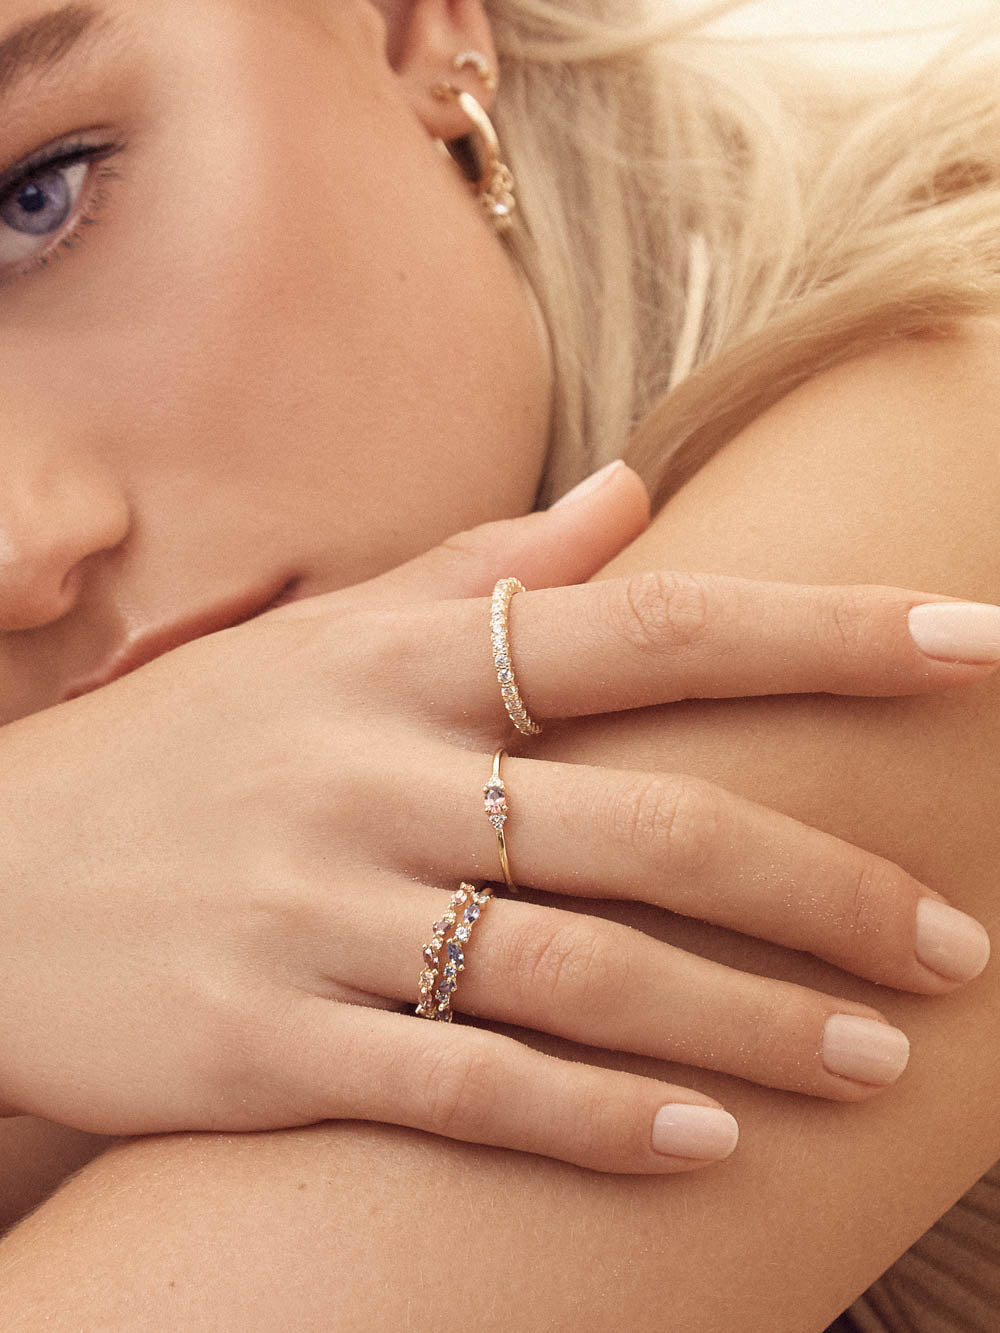 Minimalist Dainty Style Oval Shape with Accent CZ Ring by The Faint Hearted Jewelry